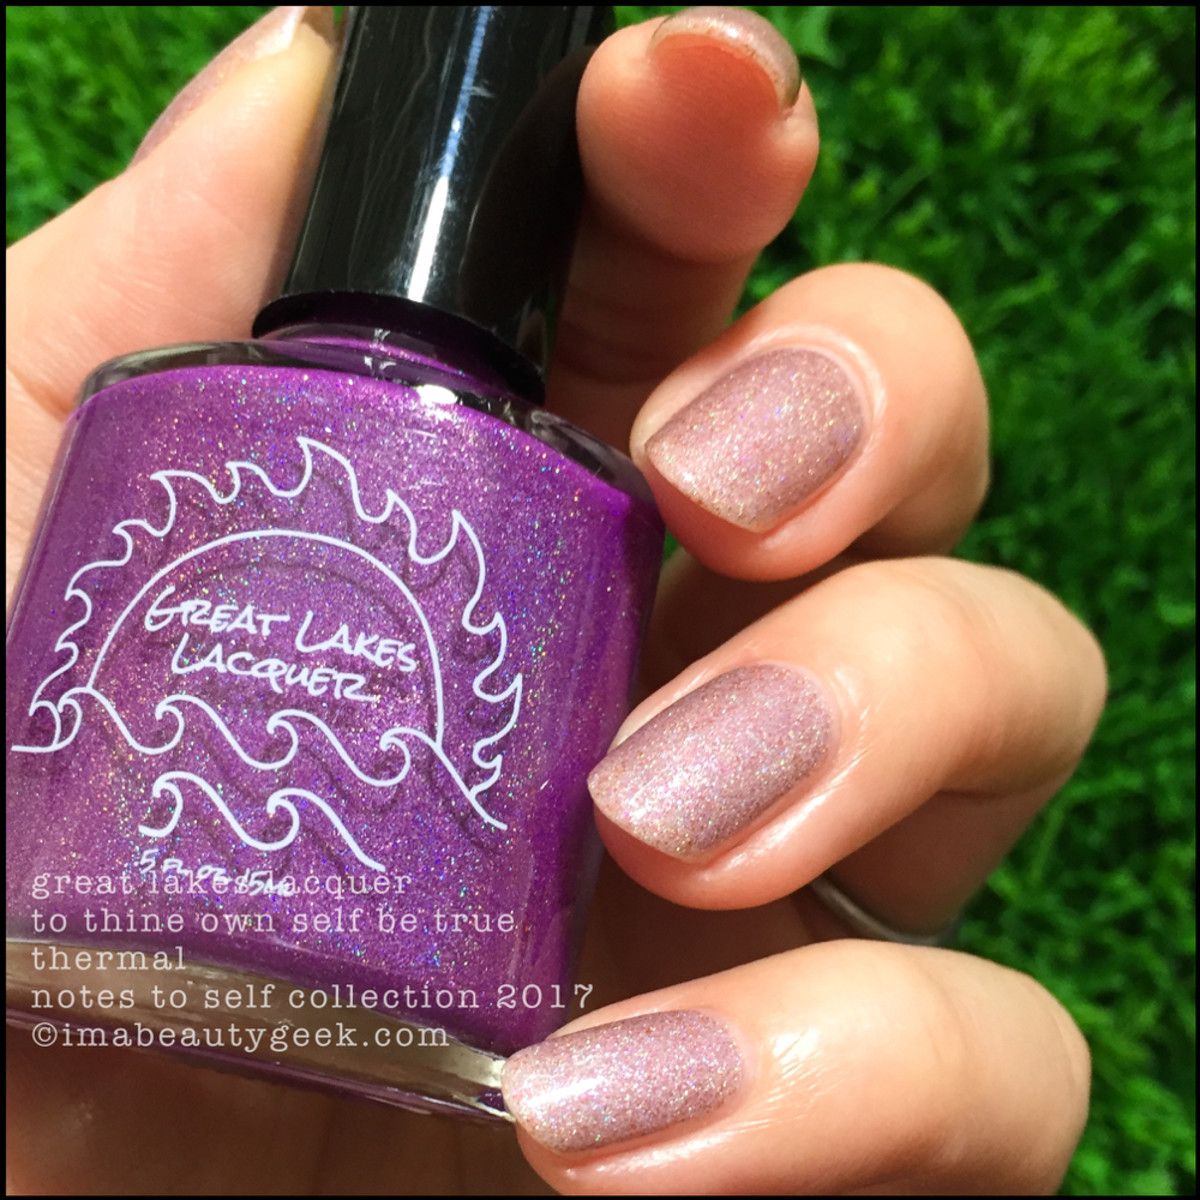 Great Lakes Lacquer To Thine Own Self Be True 3 _ Great Lakes Lacquer Notes to Self Thermal Collection 2017